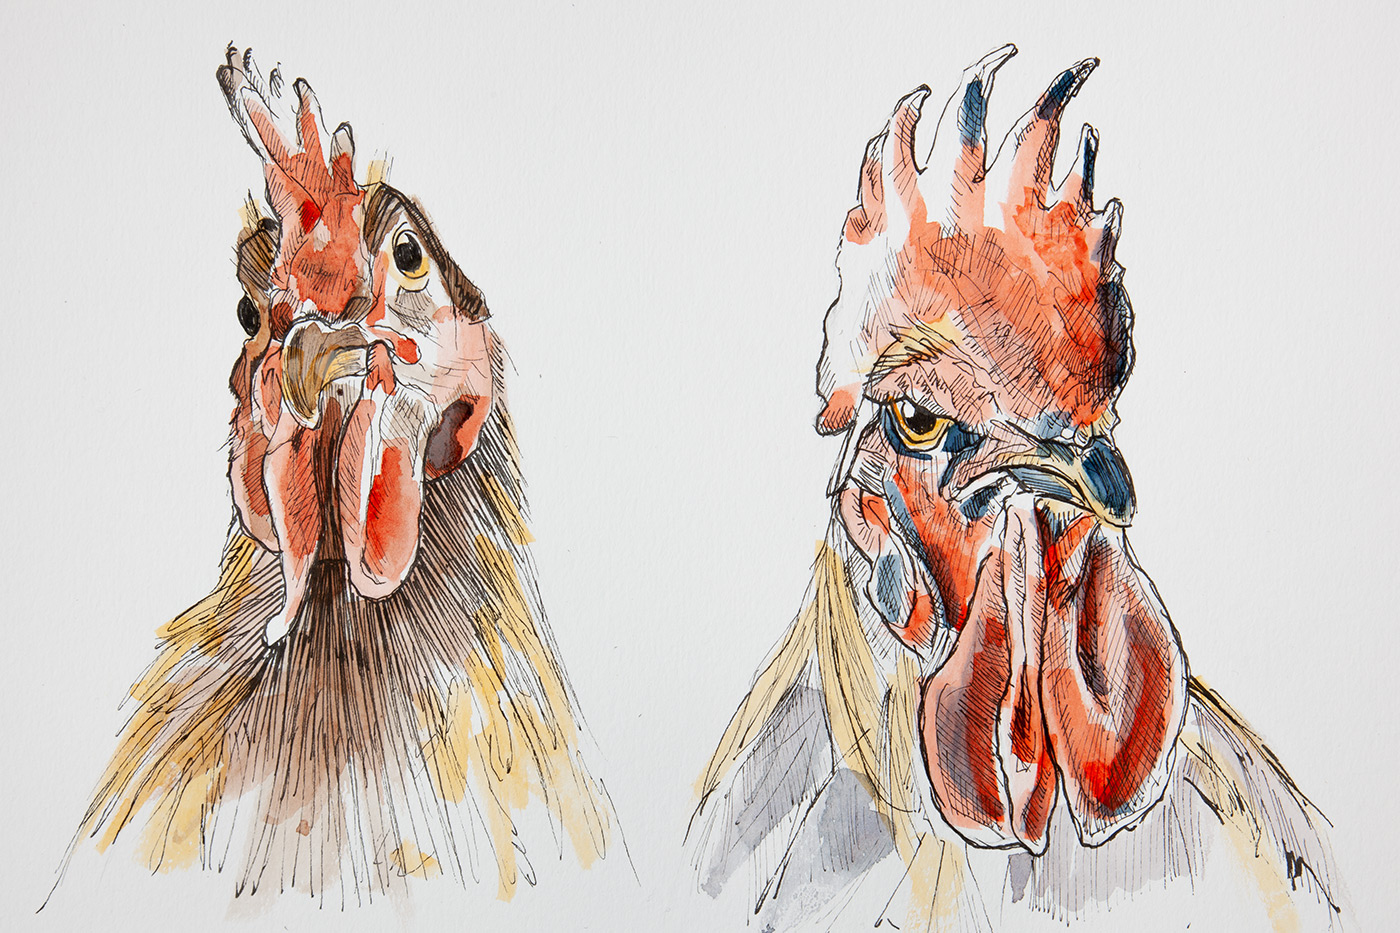 El retrato de un gallo